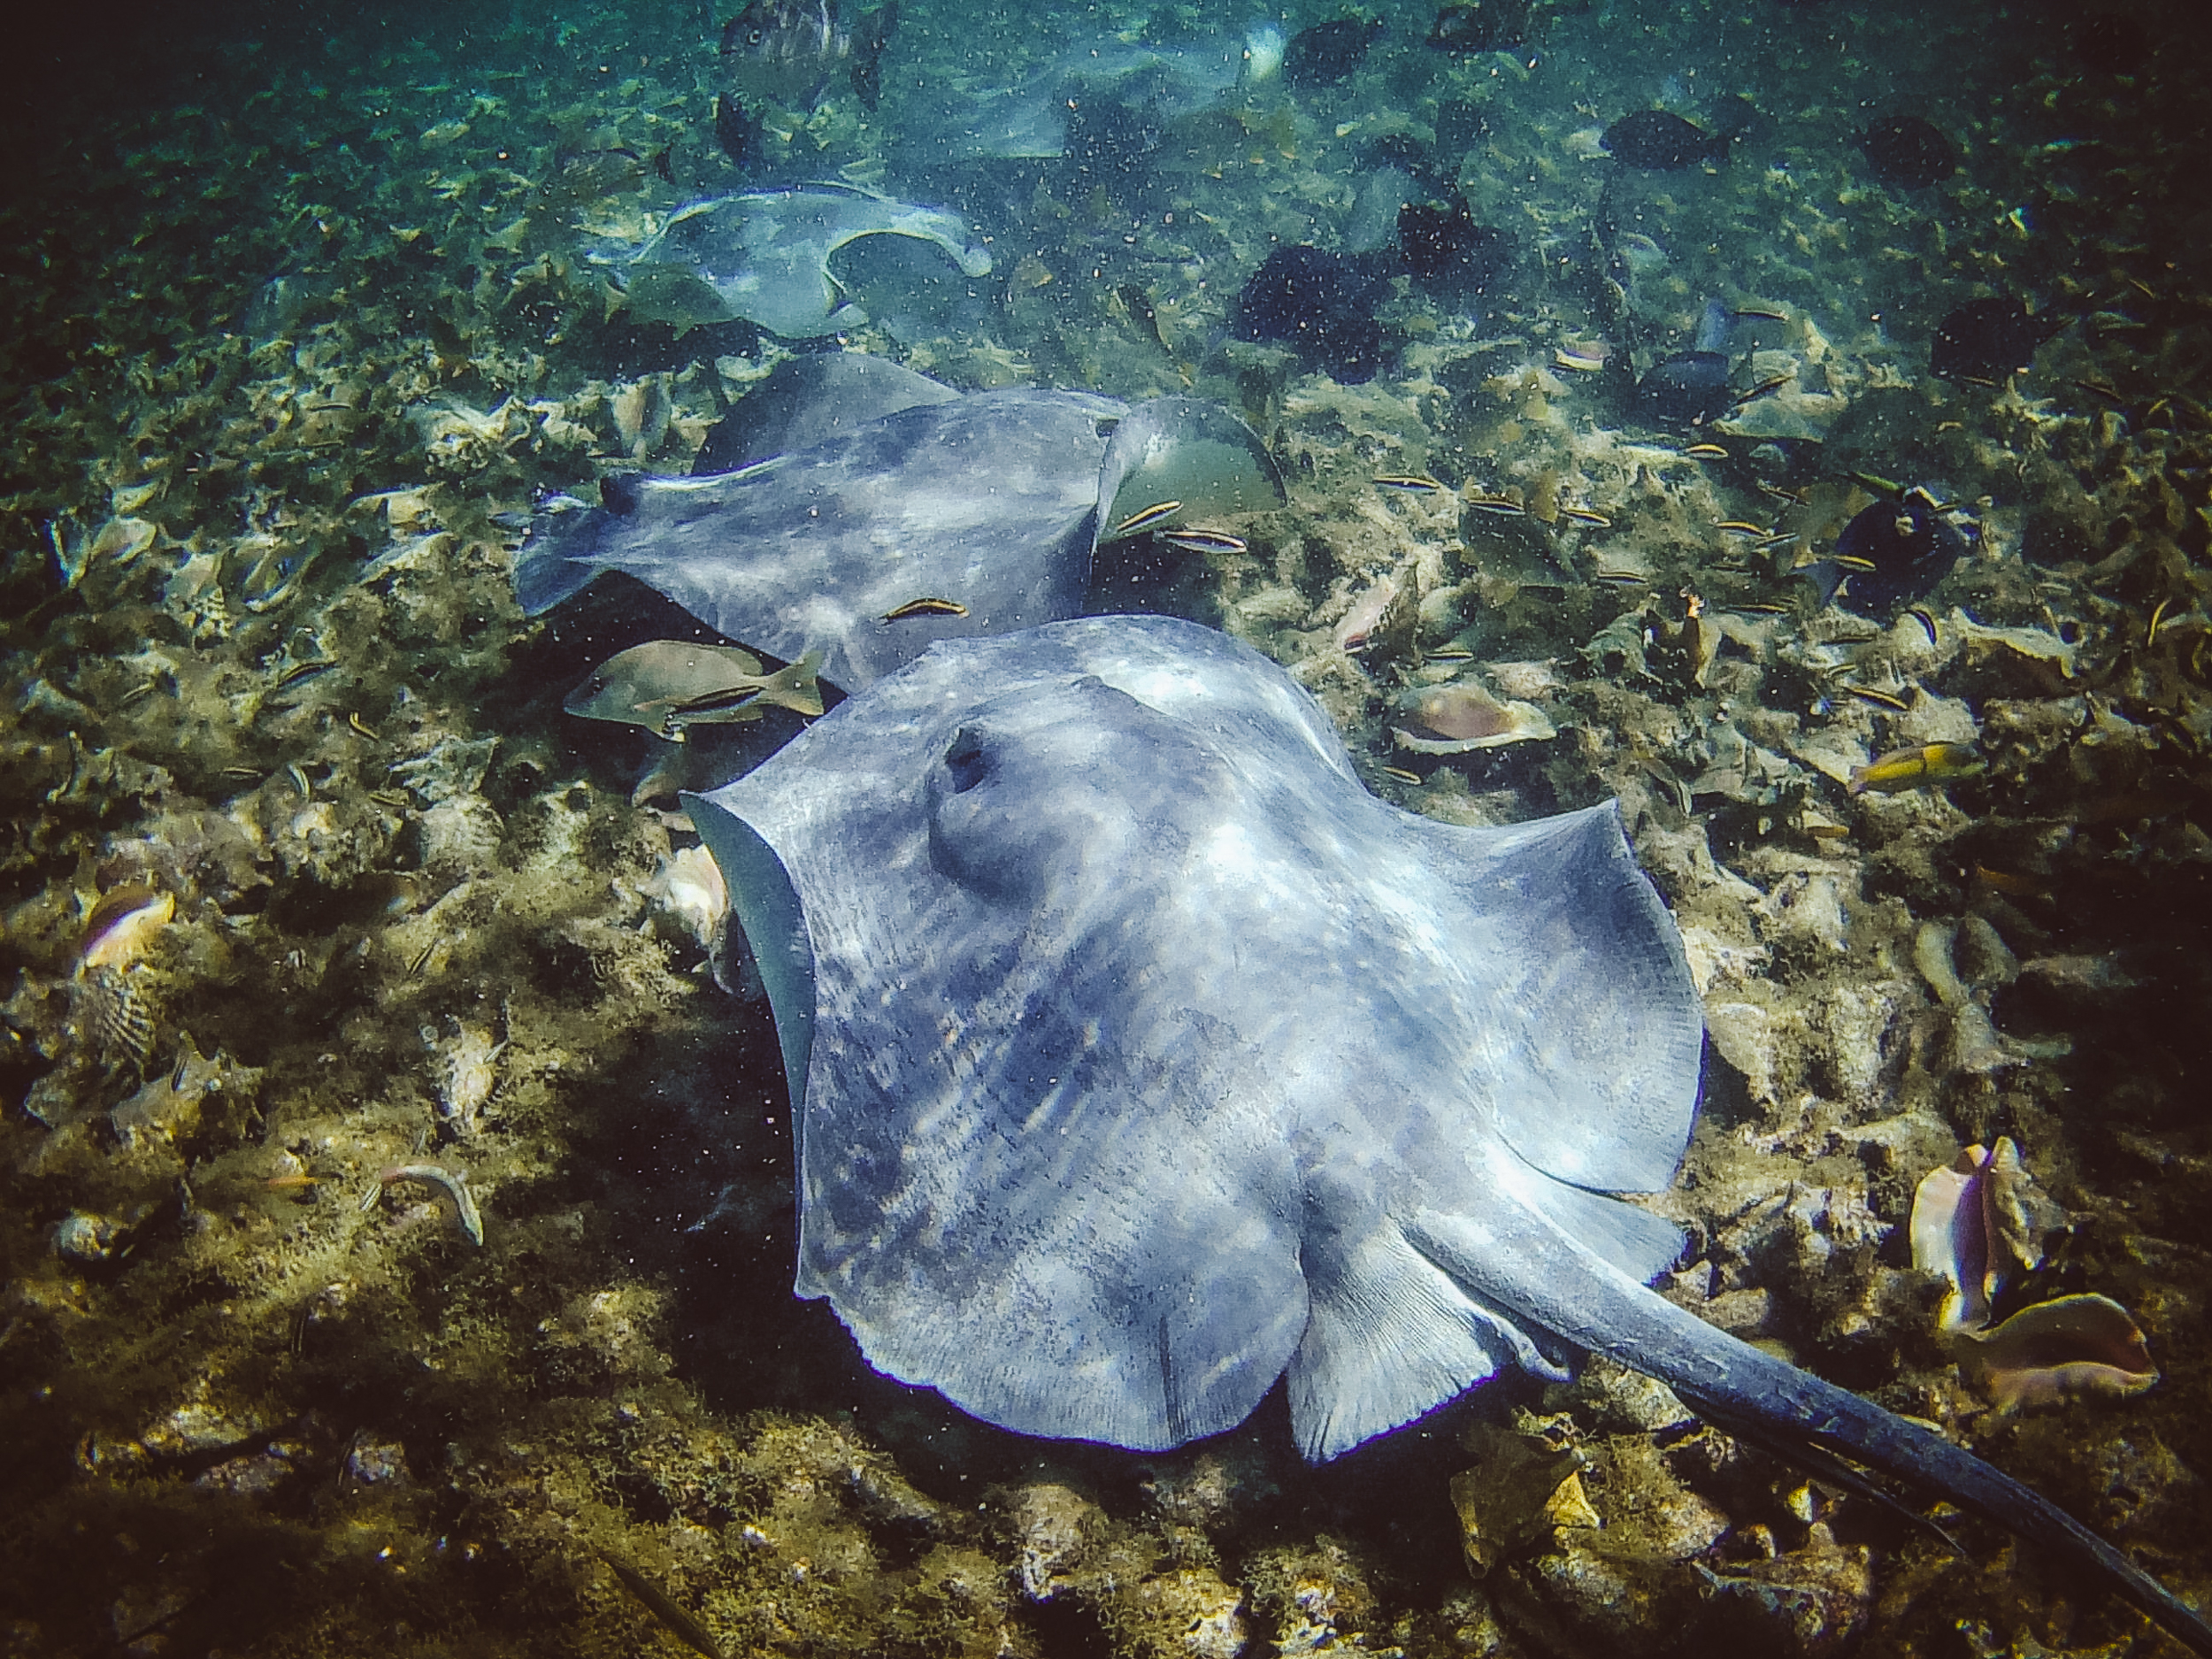 The Southern stingrays were such beautiful, gentle creatures. The nurse and reef sharks were what I came for but didn't get any good photos of either. The  Hol Chan Marine Reserve and Shark-Ray Alley  was the most wonderful way to spend a day underwater.